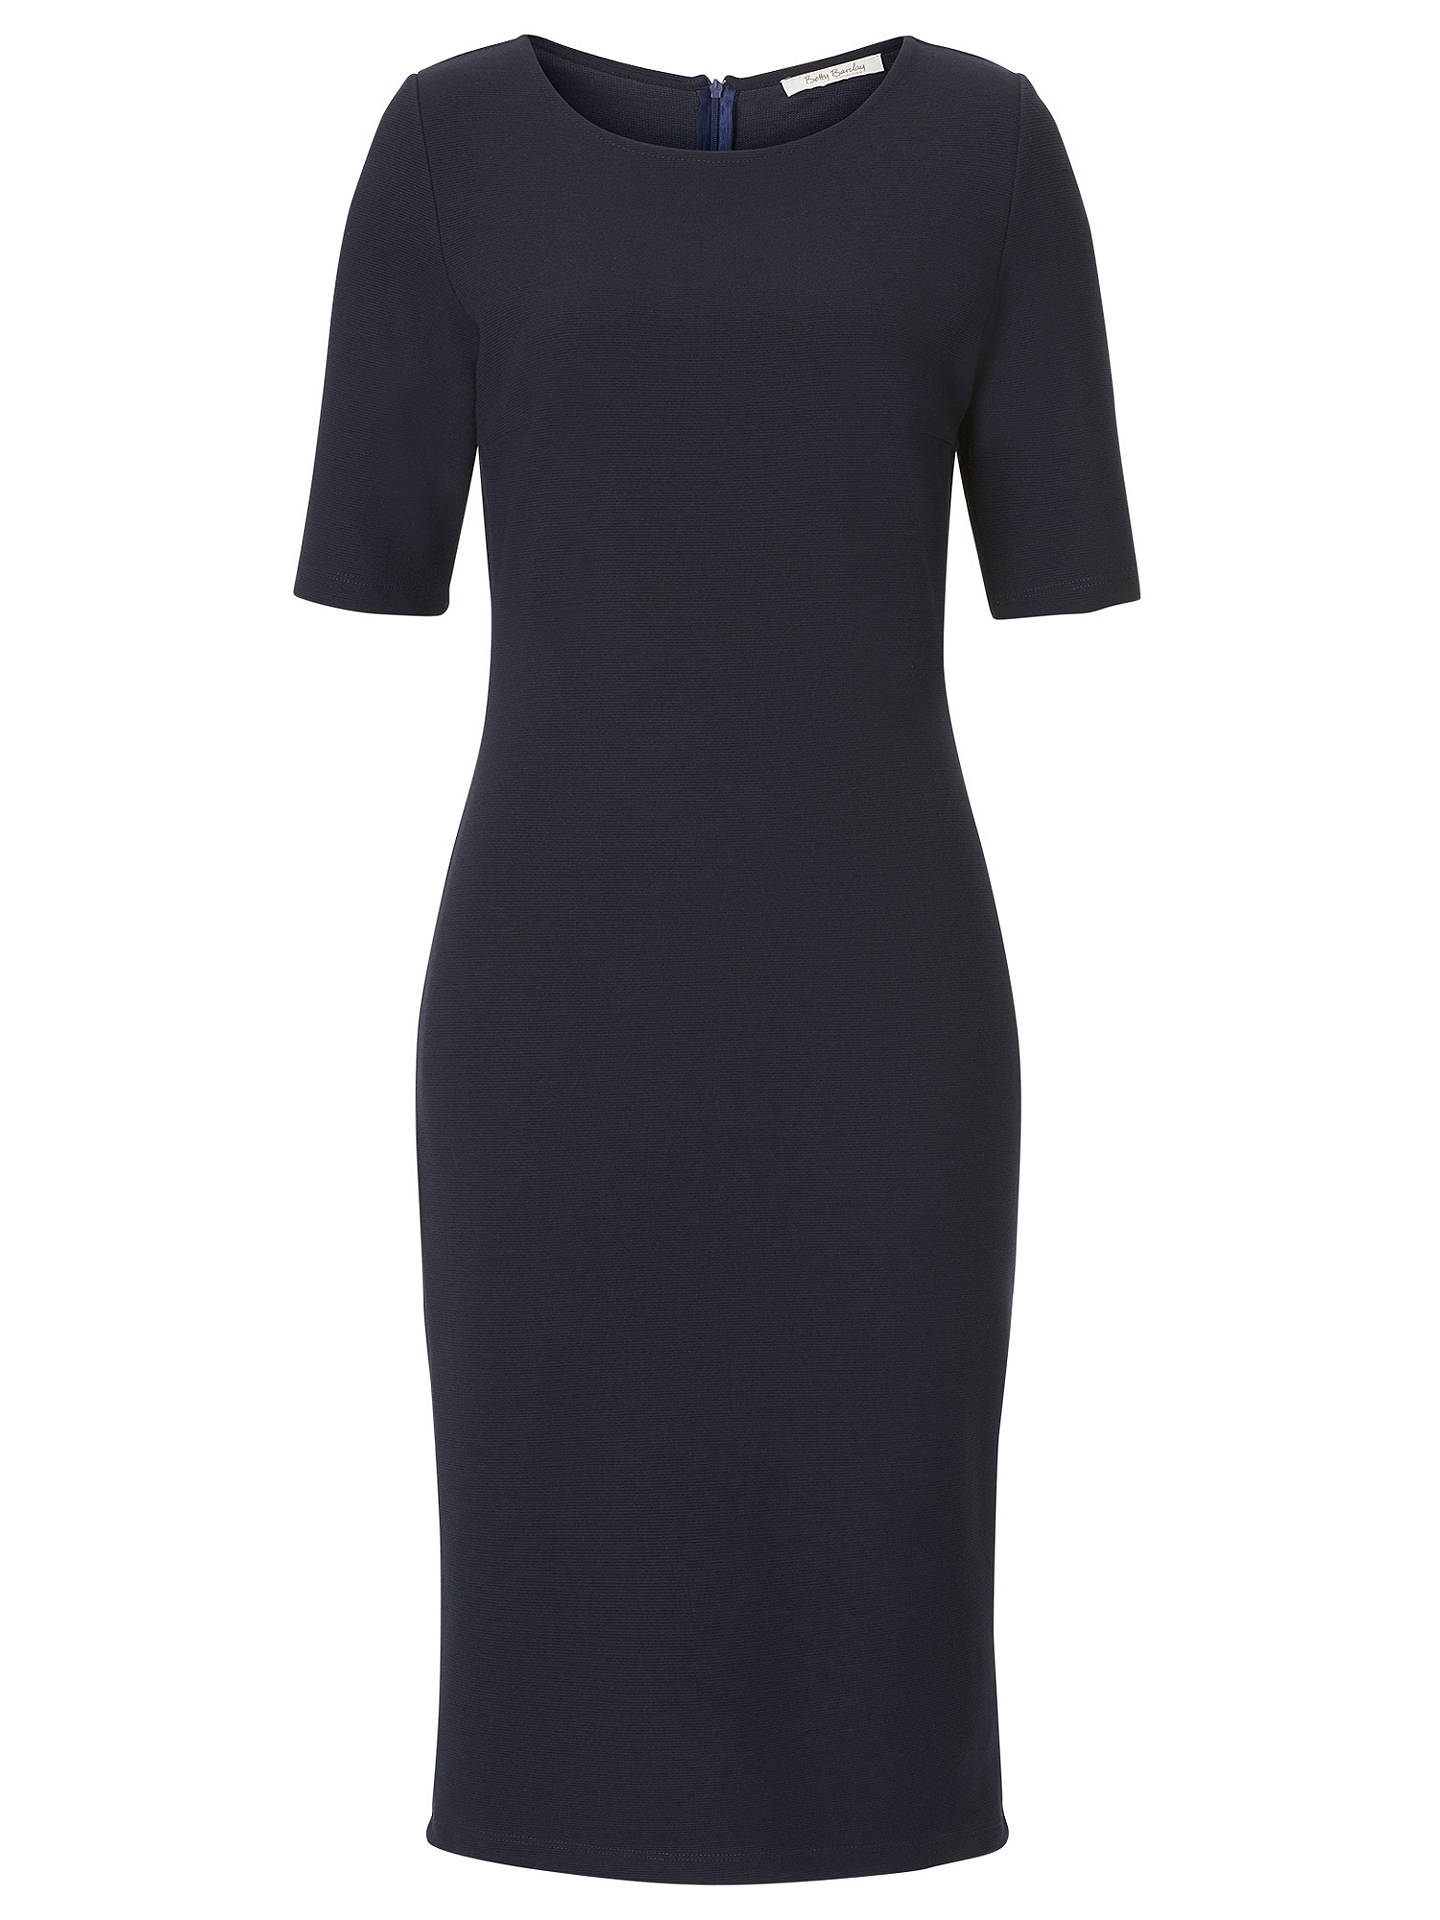 BuyBetty Barclay Short Sleeved Dress, Dark Sky, 18 Online at johnlewis.com